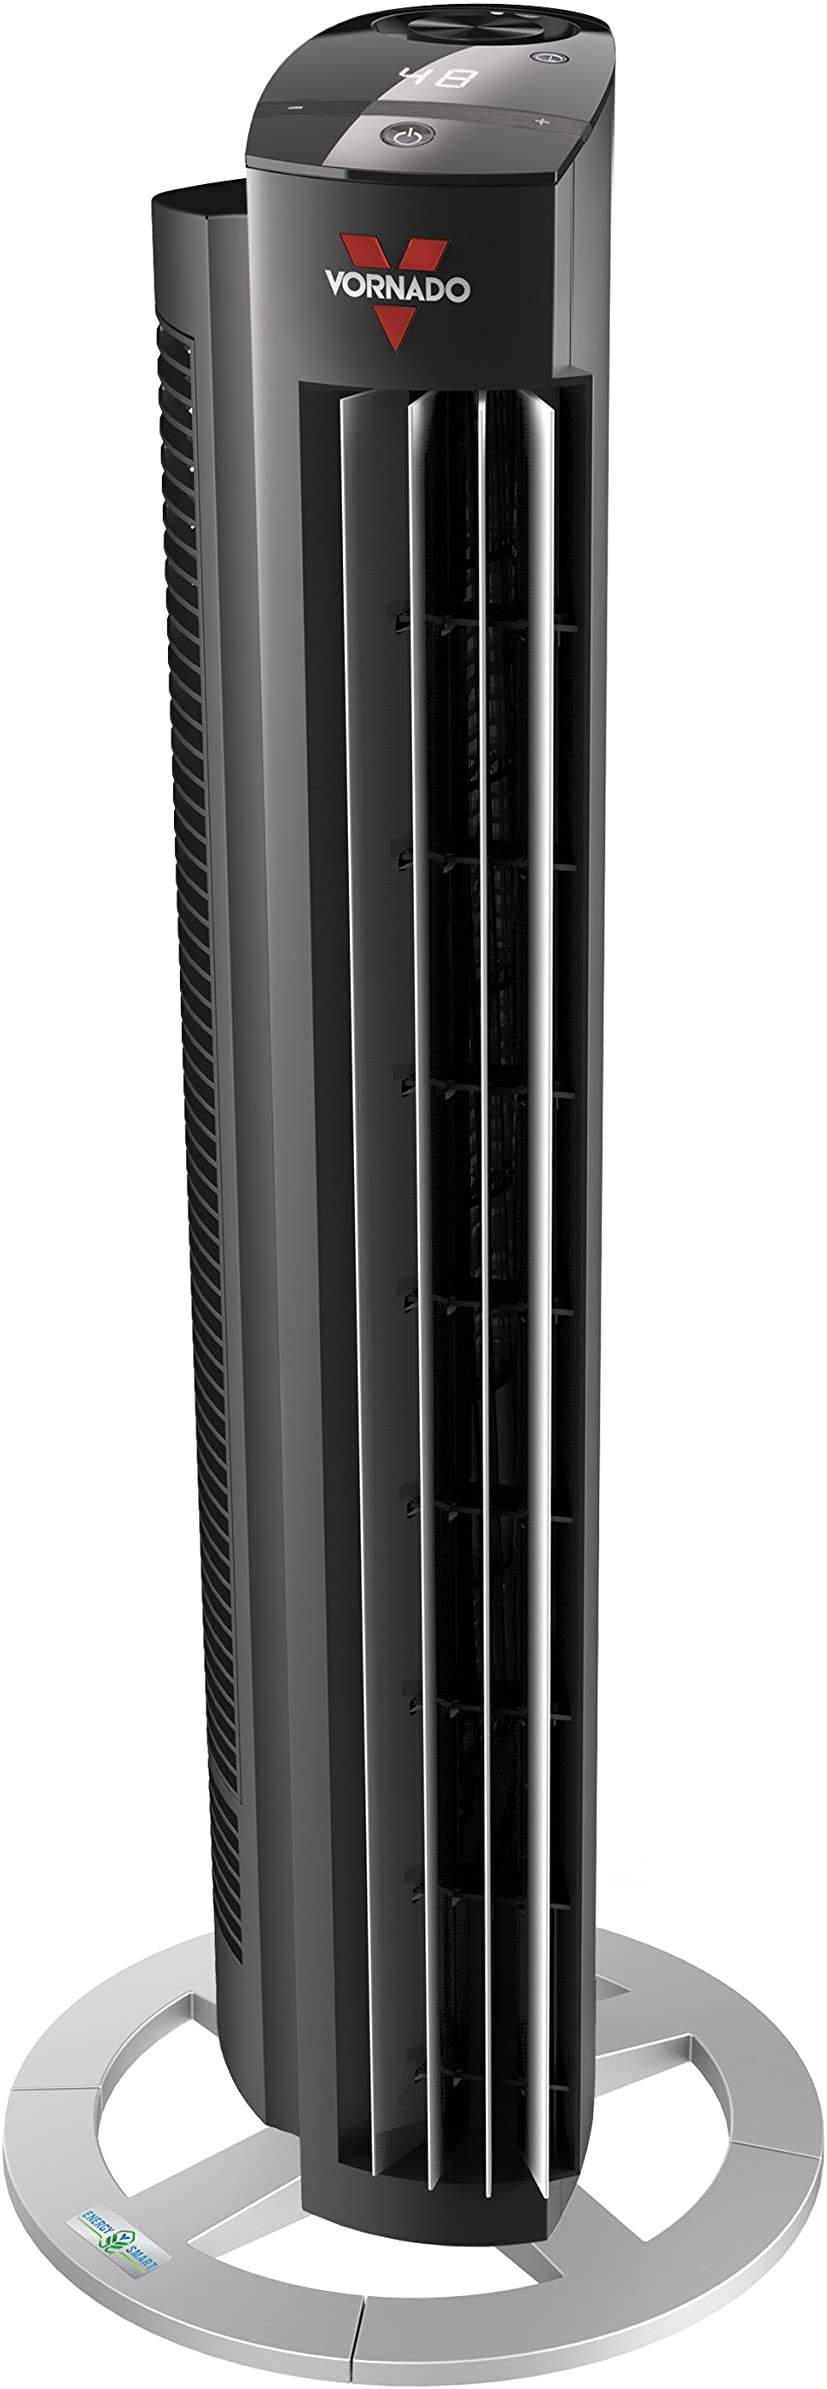 Vornado NGT33DC Energy Smart Tower Air Circulator Fan with Variable Speed, 33""